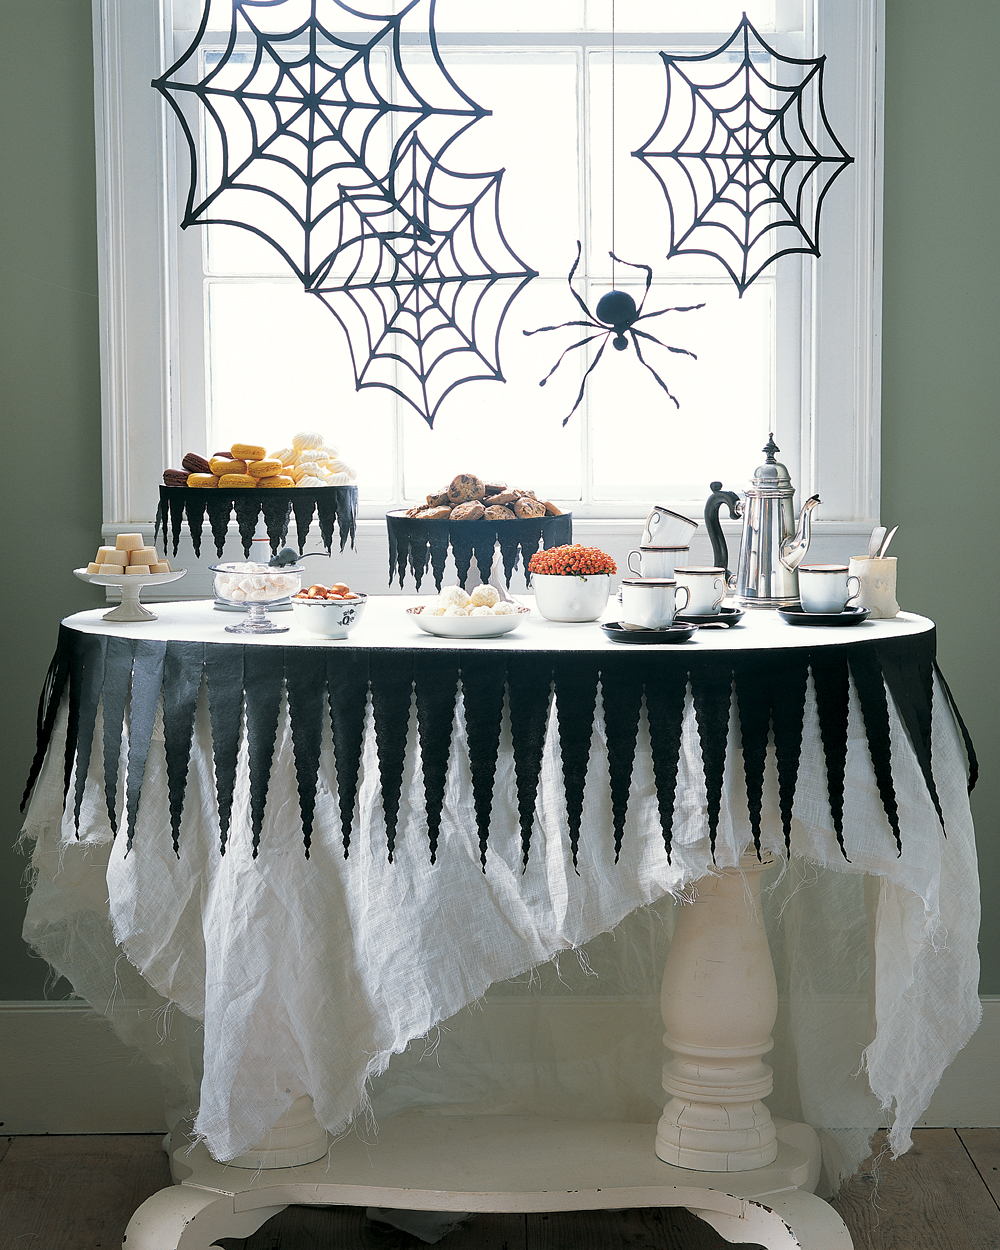 Halloween Tablecloth with Crafted Spider Decorations